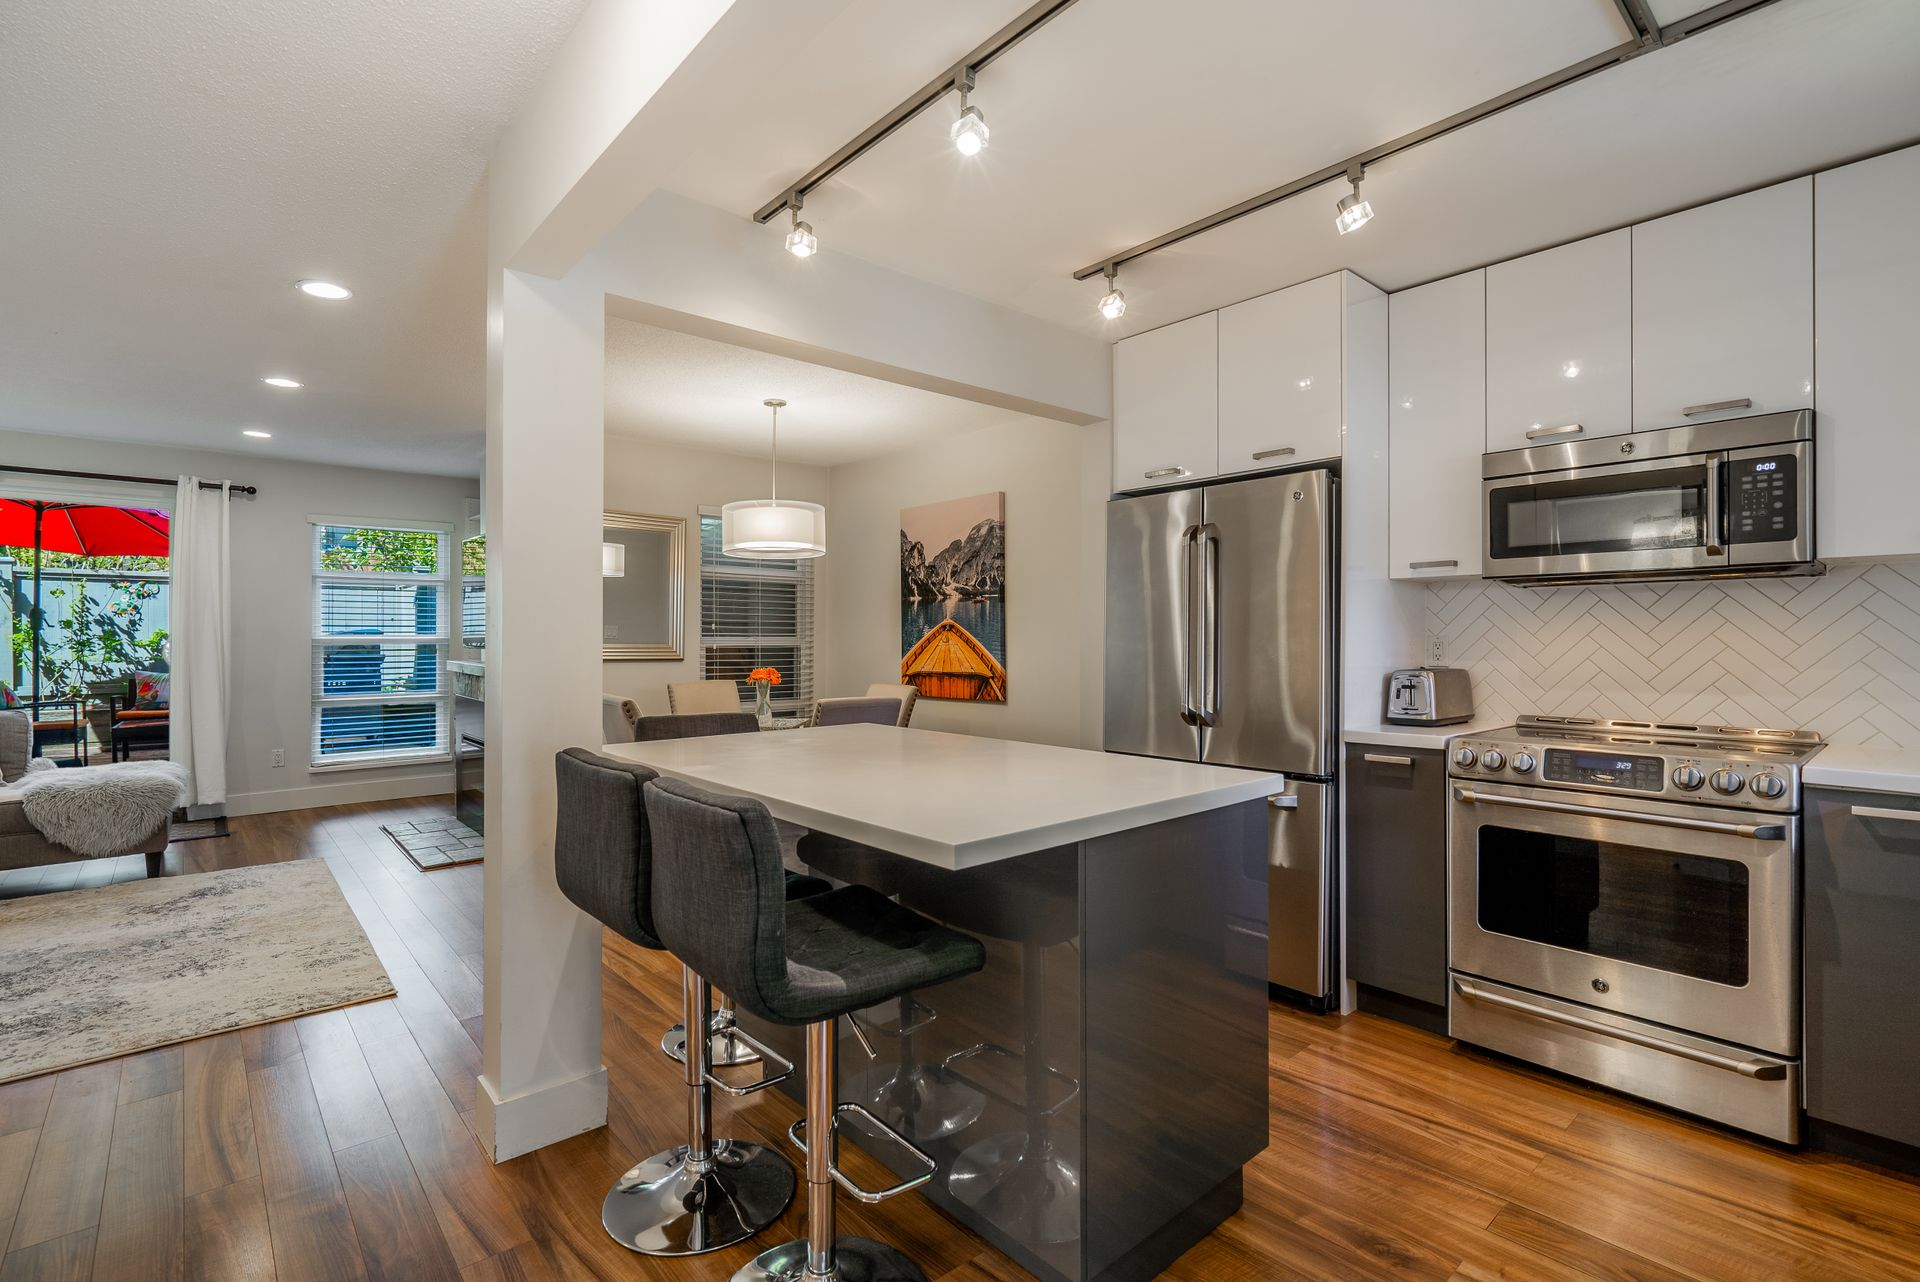 unit-17-900-17th-street-w-north-vancouver-9 at 17 - 900 W 17th Street, Mosquito Creek, North Vancouver